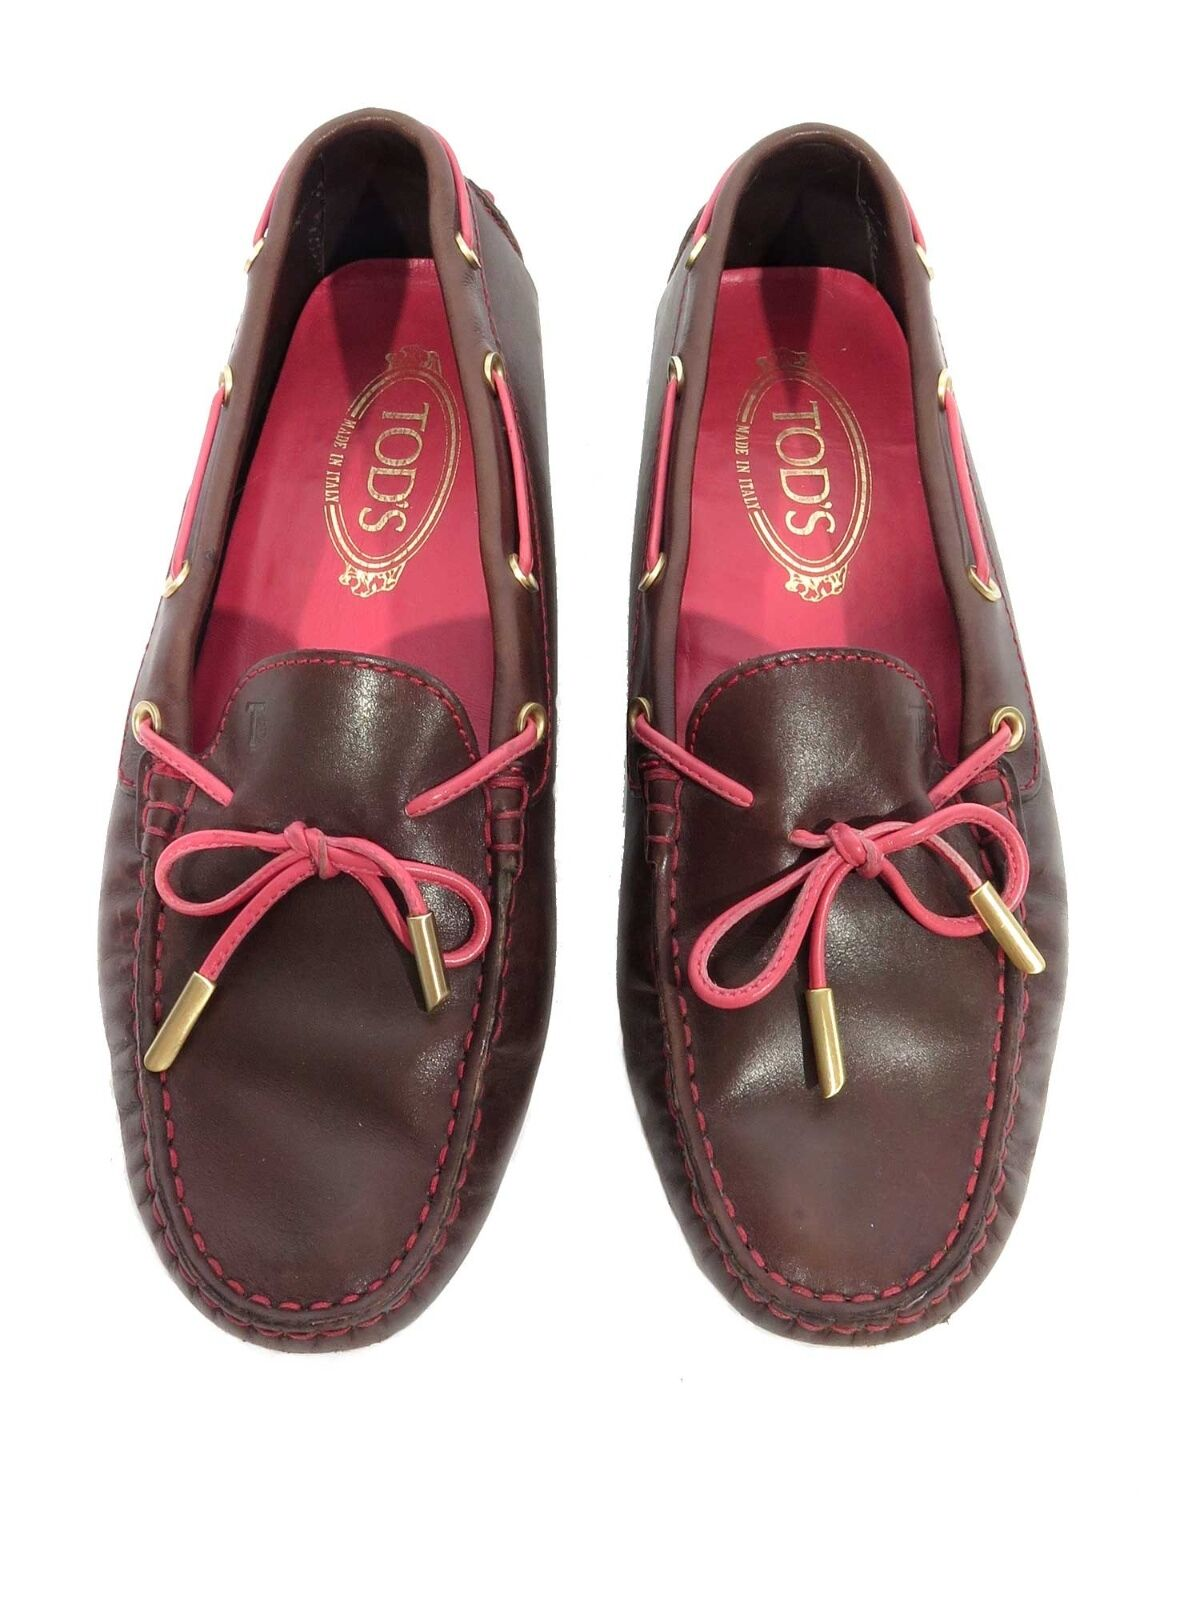 TOD'S Gommino Driving Pelle Loafers